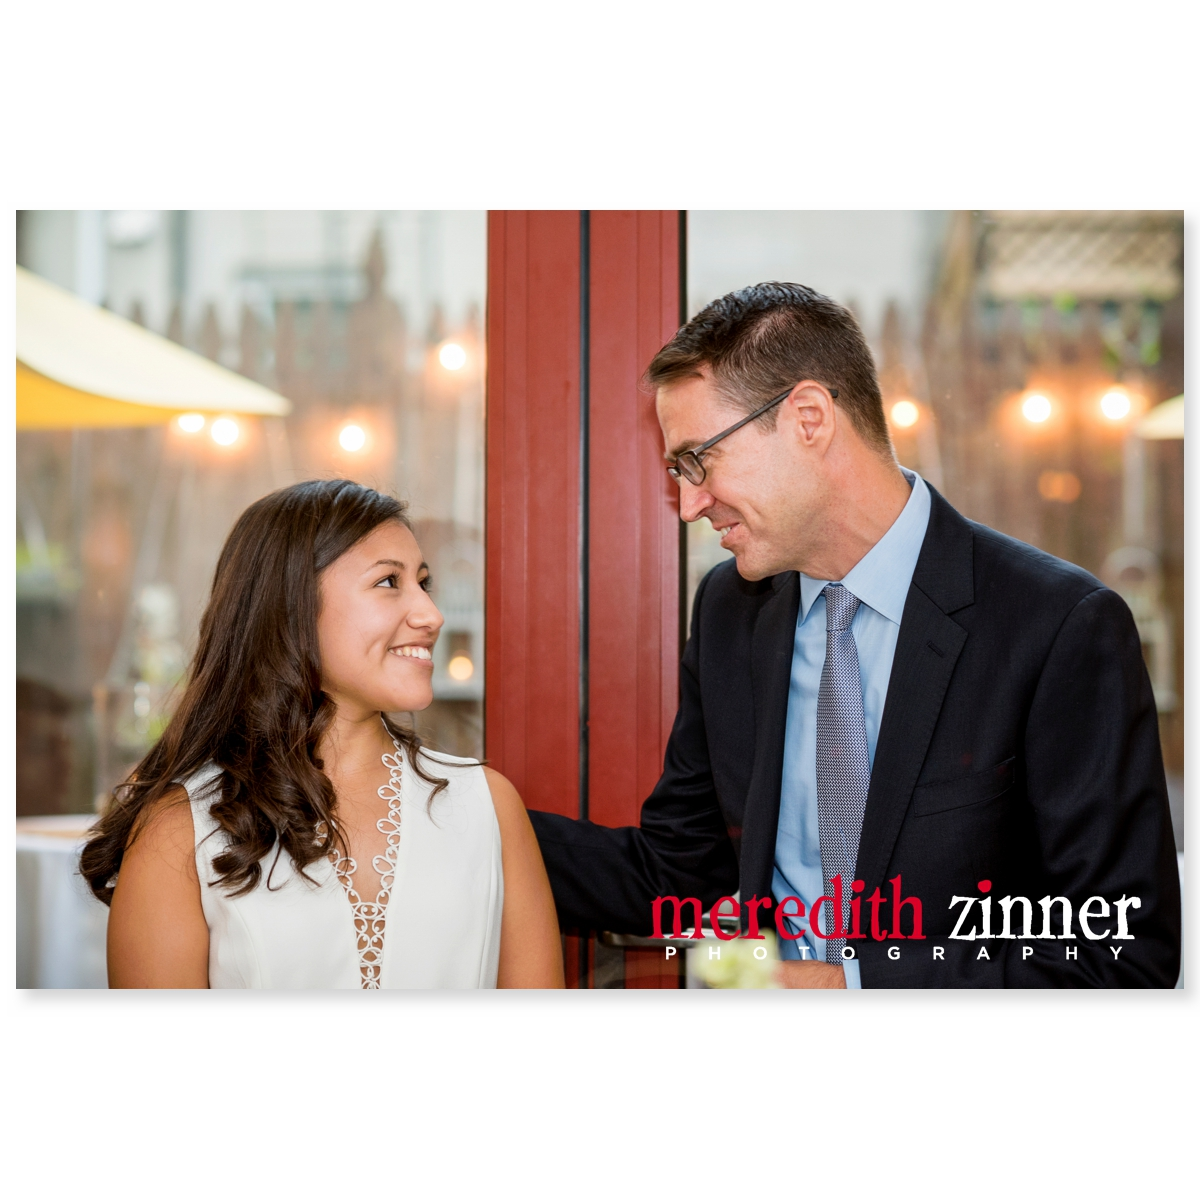 Meredith_Zinner_Photography_StilesCelebration_0170